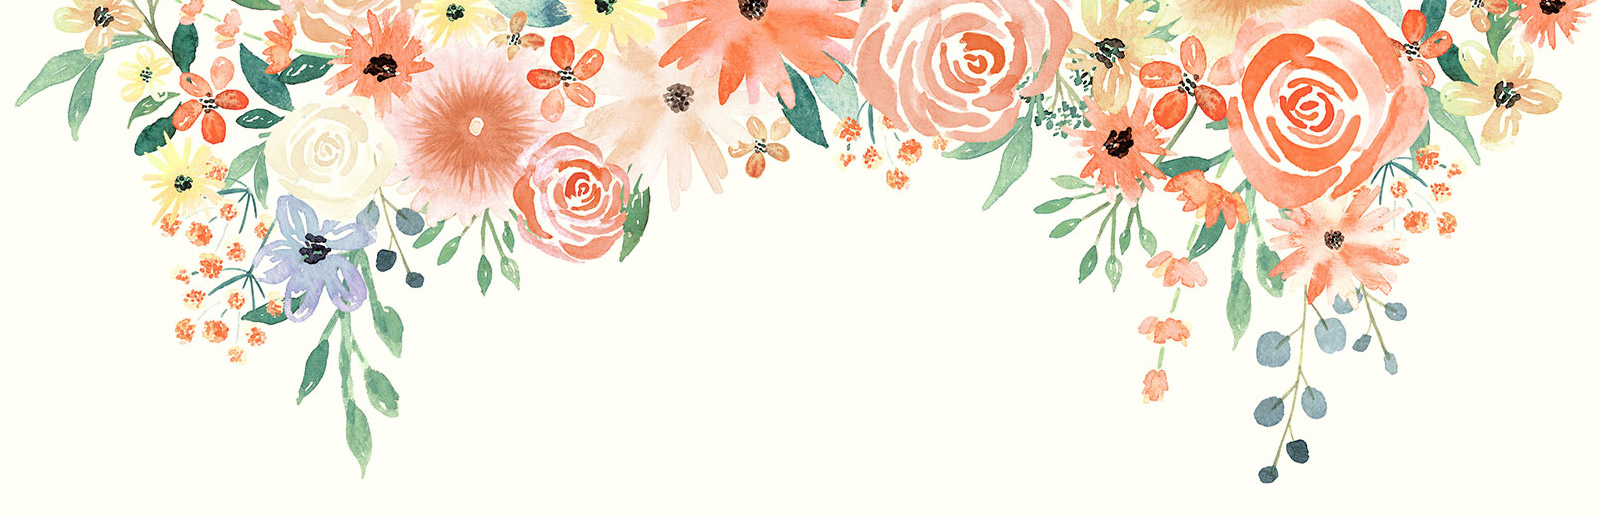 Free Fall Flowers Wallpaper Watercolor Florals For Graphic Design Every Tuesday